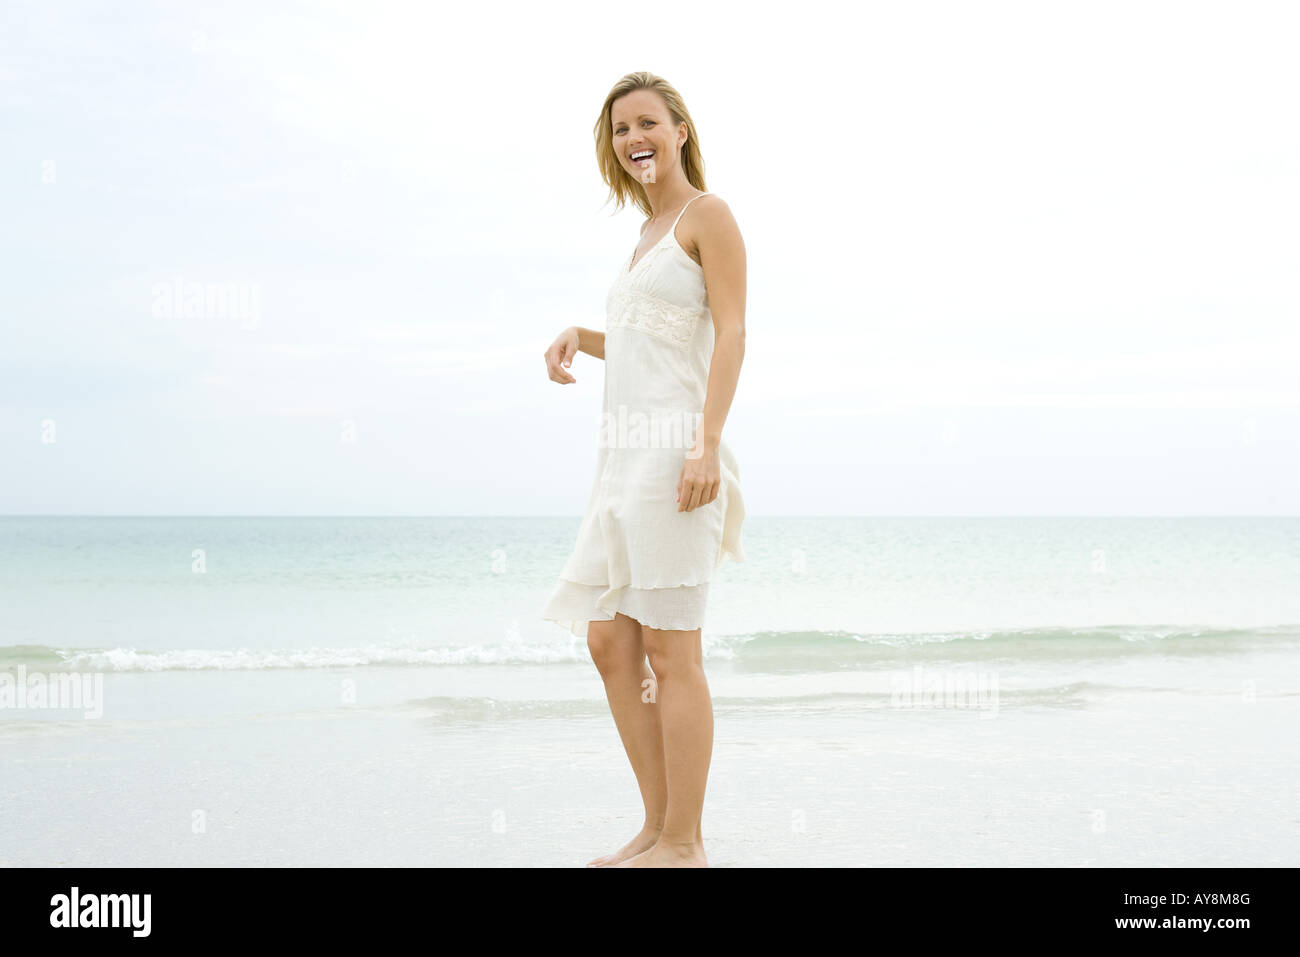 Young woman standing on beach in sundress, rire Photo Stock